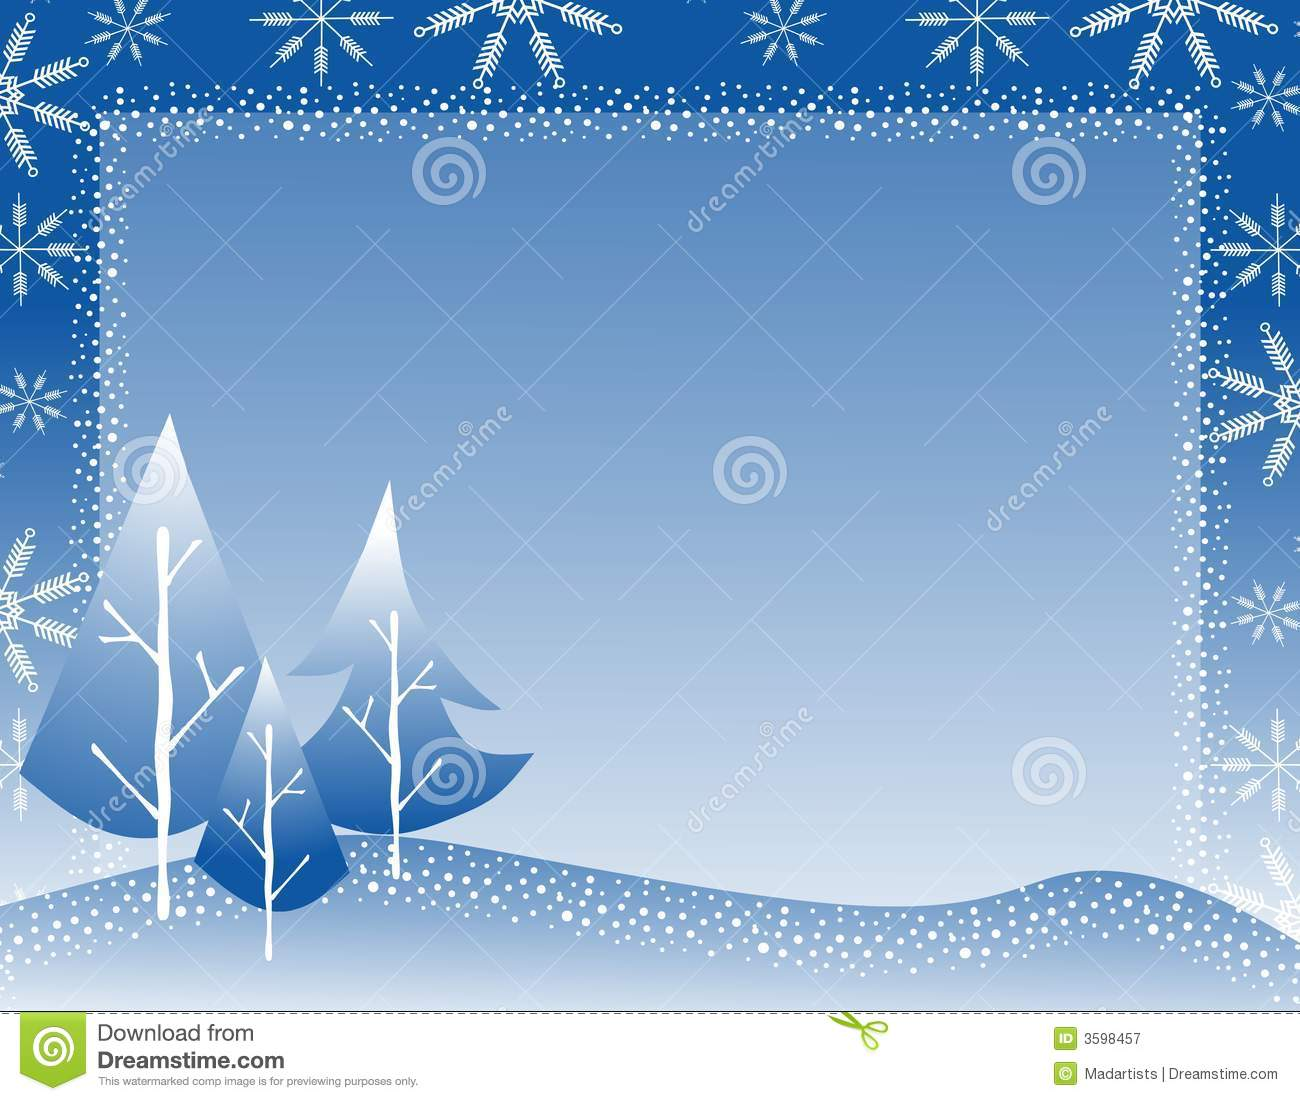 ... group of Christmas trees, and snowflakes as a frame or border